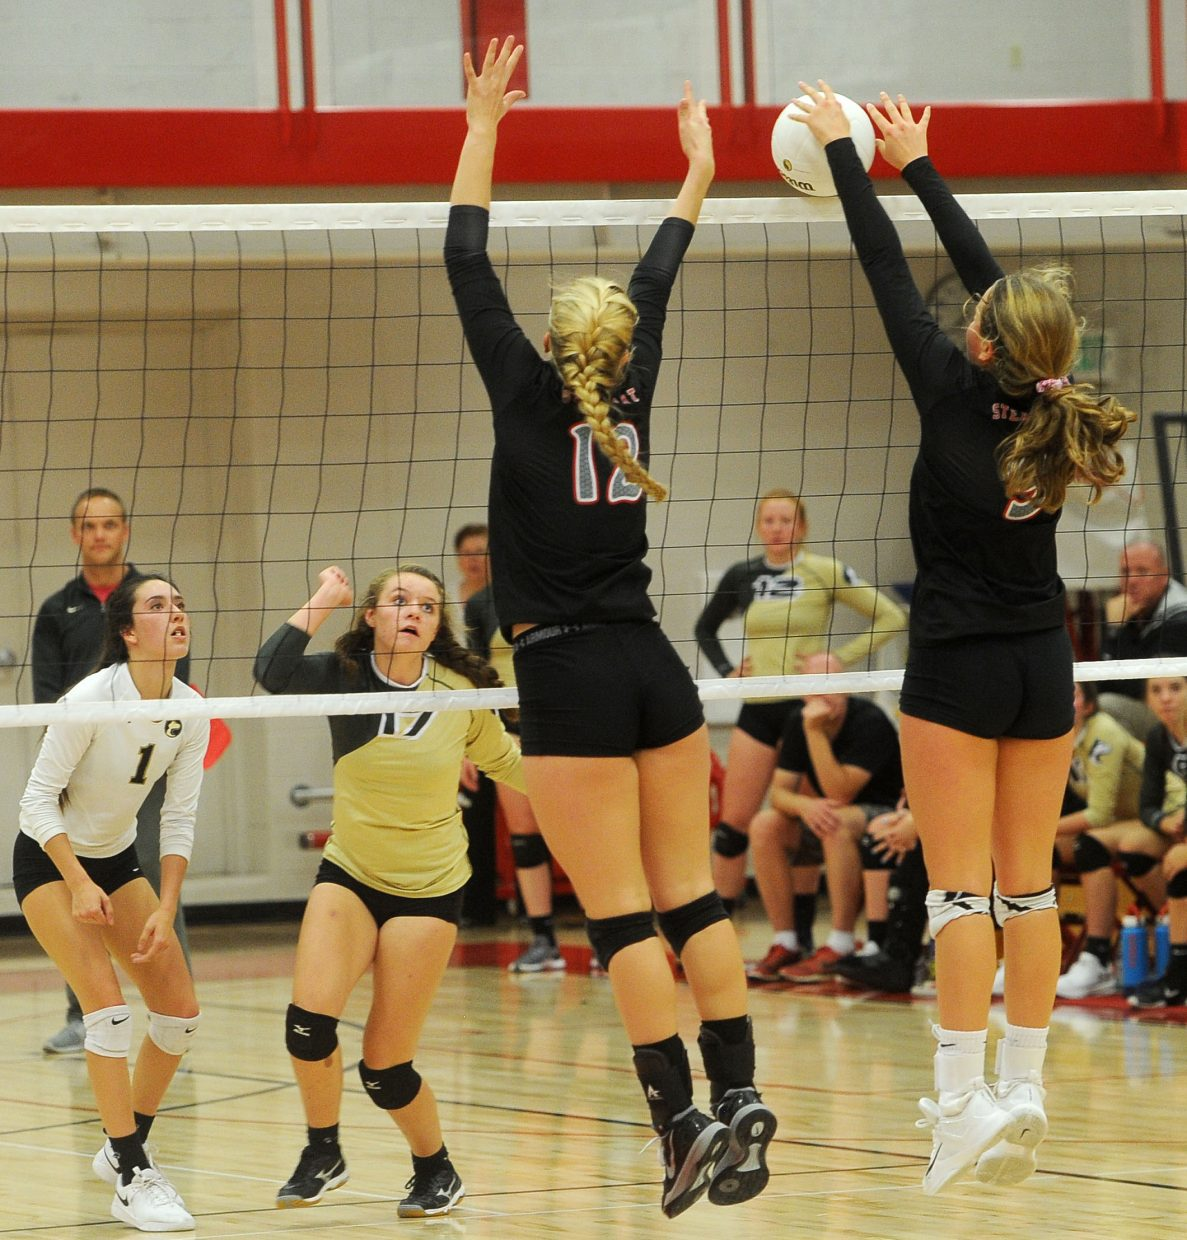 Seniors Avery Harrington and Abi Berlet line a block against Battle Mountain at Steamboat Springs High School on Tuesday, Sept. 25.